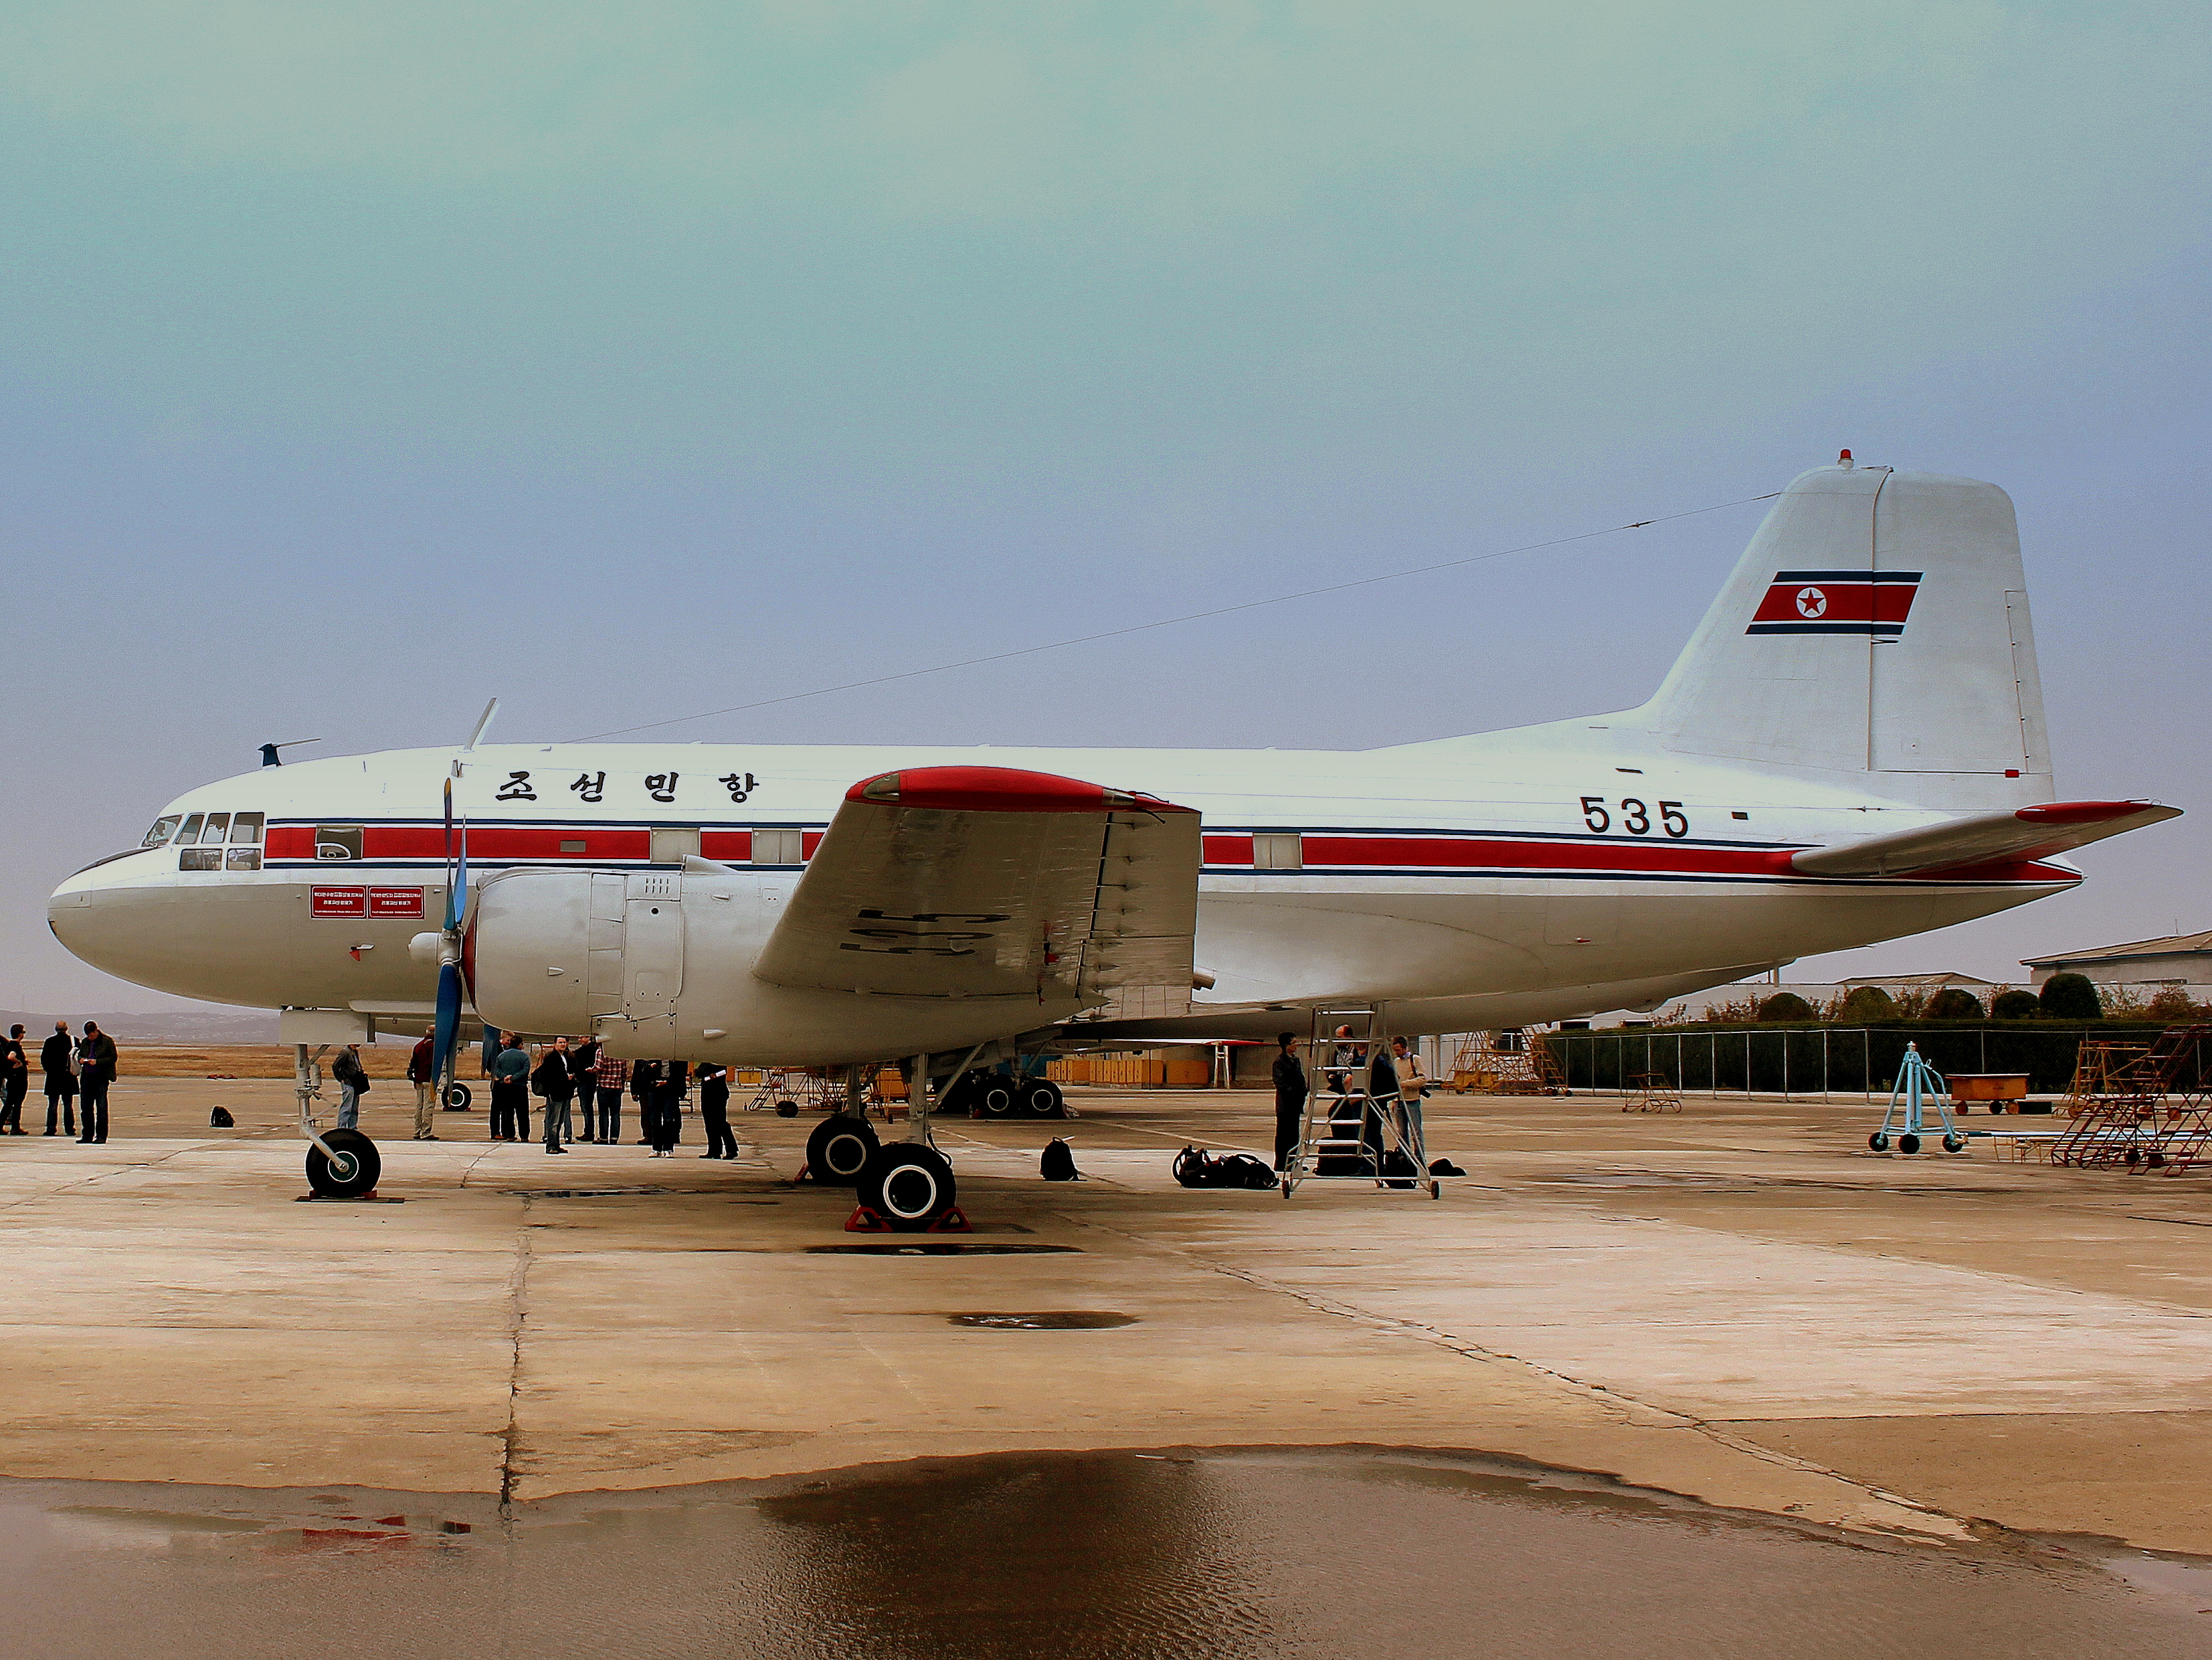 AIR KORYO IL14 P535 AT PYONGYANG SUNAN AIRPORT DPR KOREA OCT 2012 (8169560060)